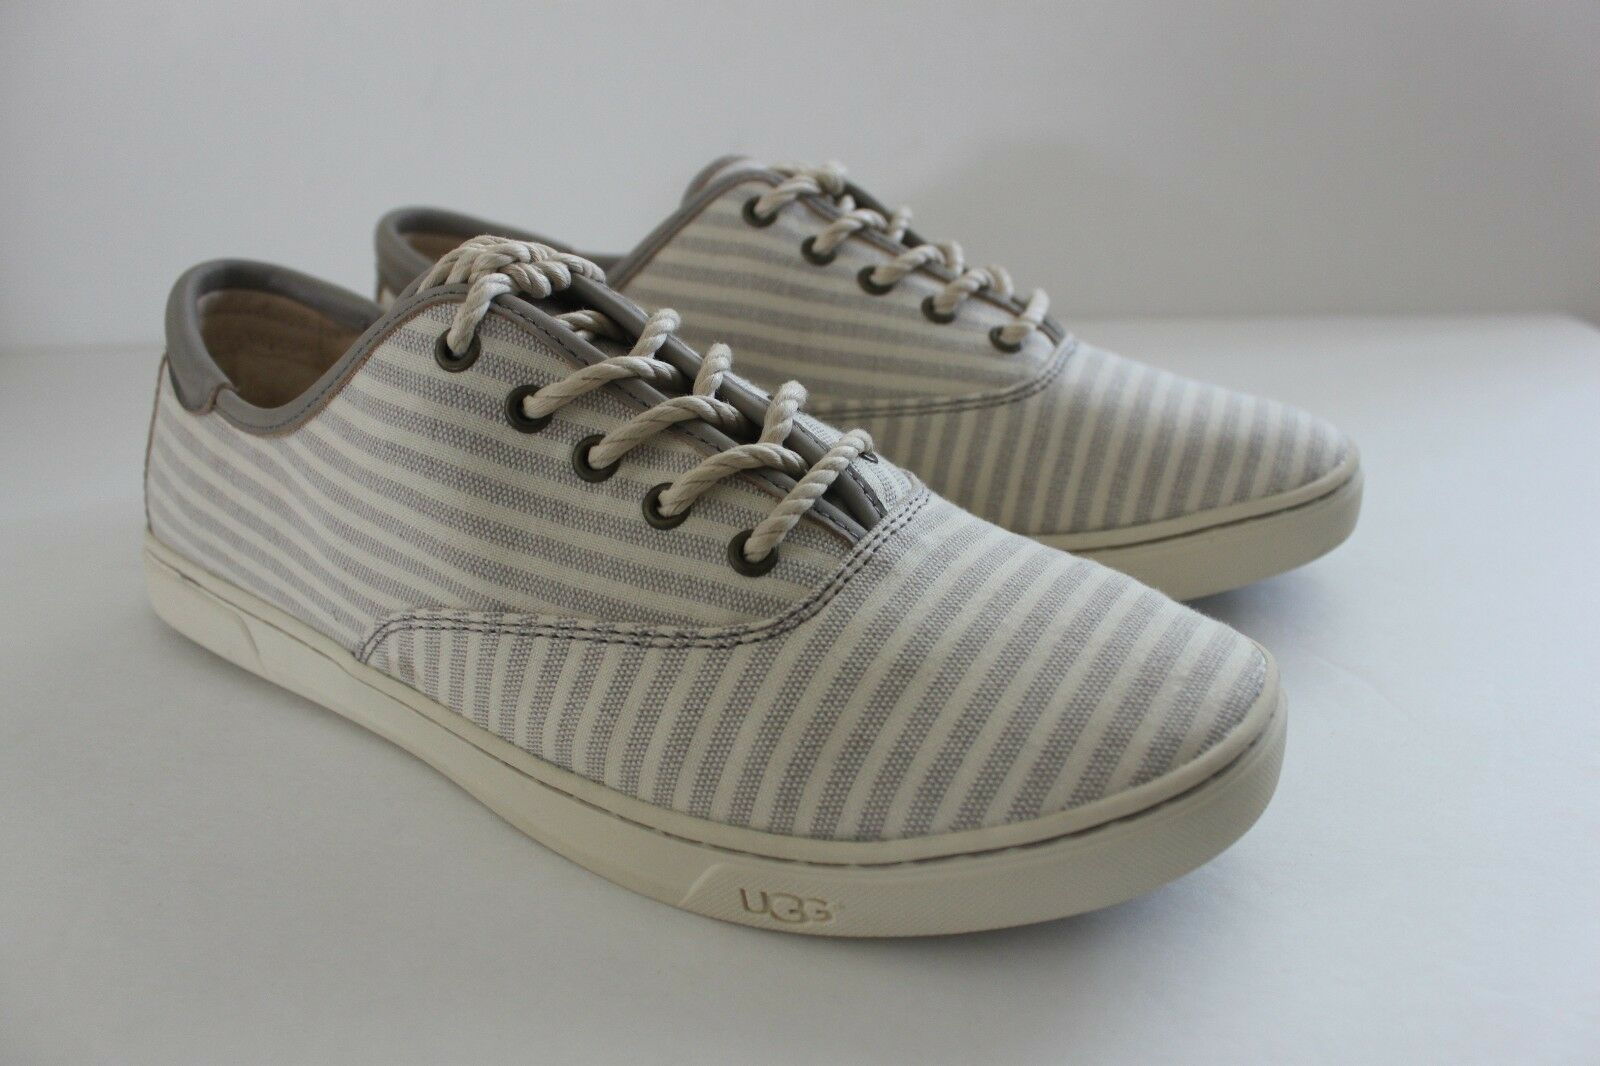 Ugg Australia Eyan II Nautical Striped Oyster Sneakers Shoe Women's Size 11 NIB